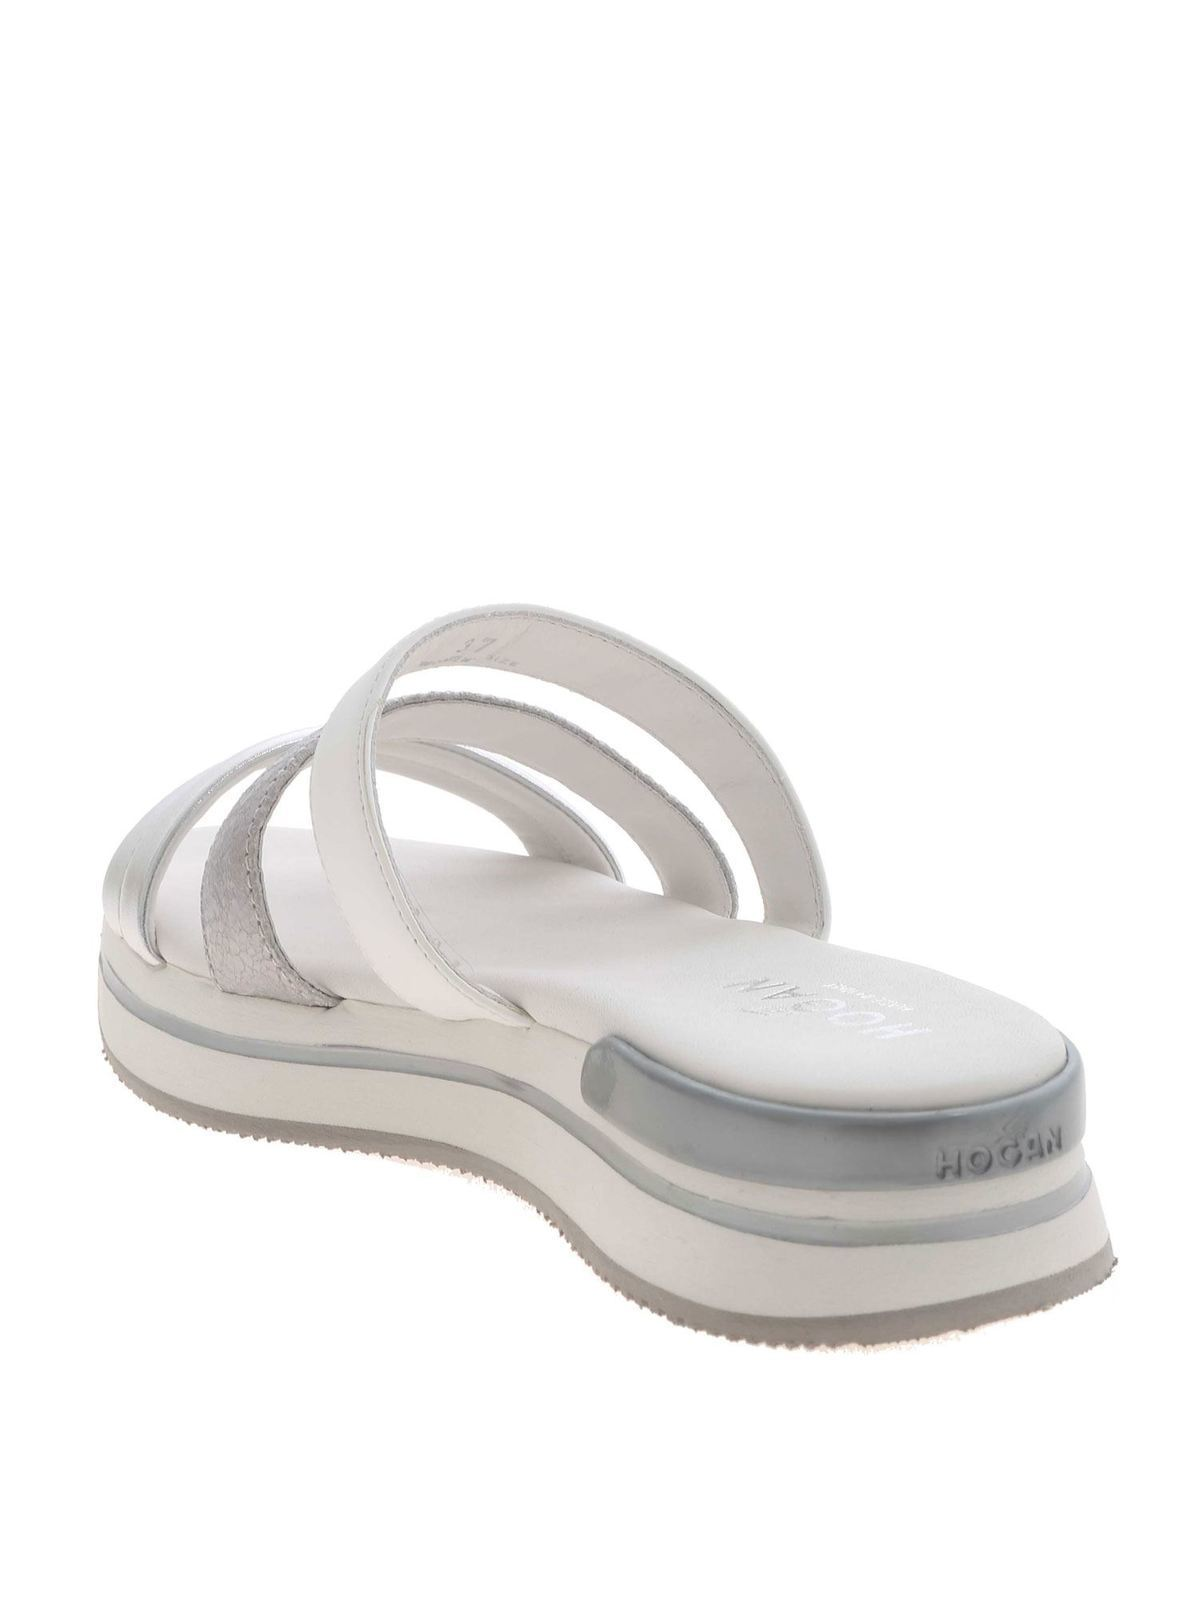 Flip flops Hogan - H257 slippers in white and silver ...